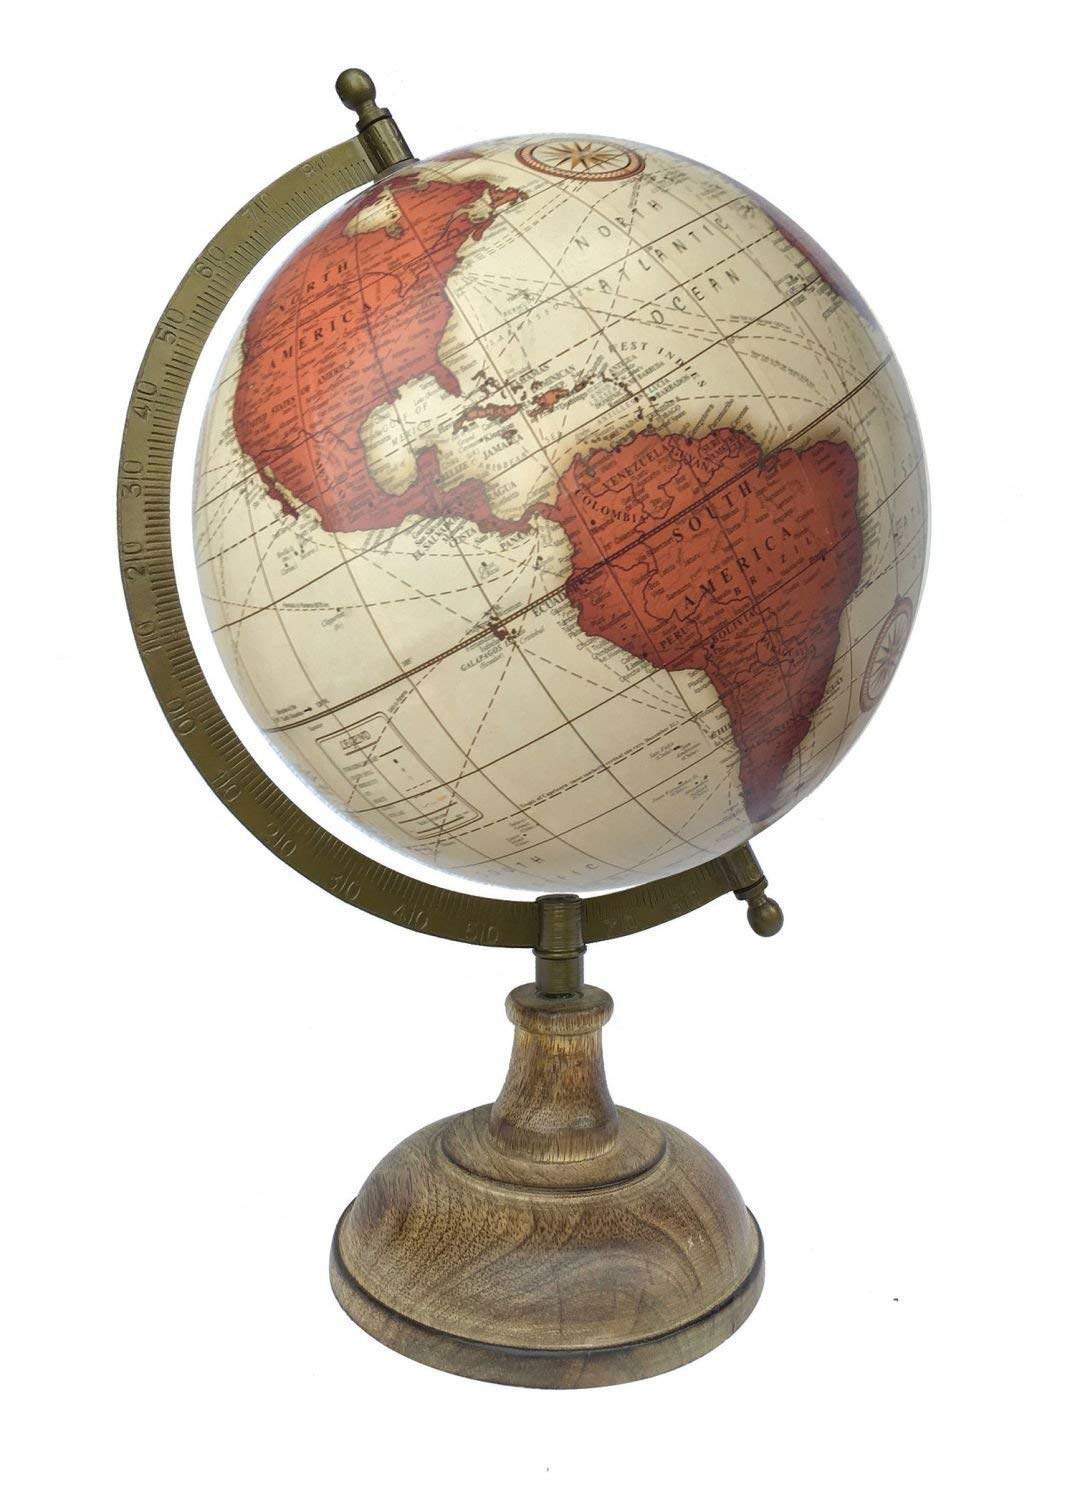 Home Decor Vintage Brick Red World Globe with Wooden Base and Brass Finish Arc Gift Item Educational Globe Antique Globe Brick Red by Globes Hub Political Globe